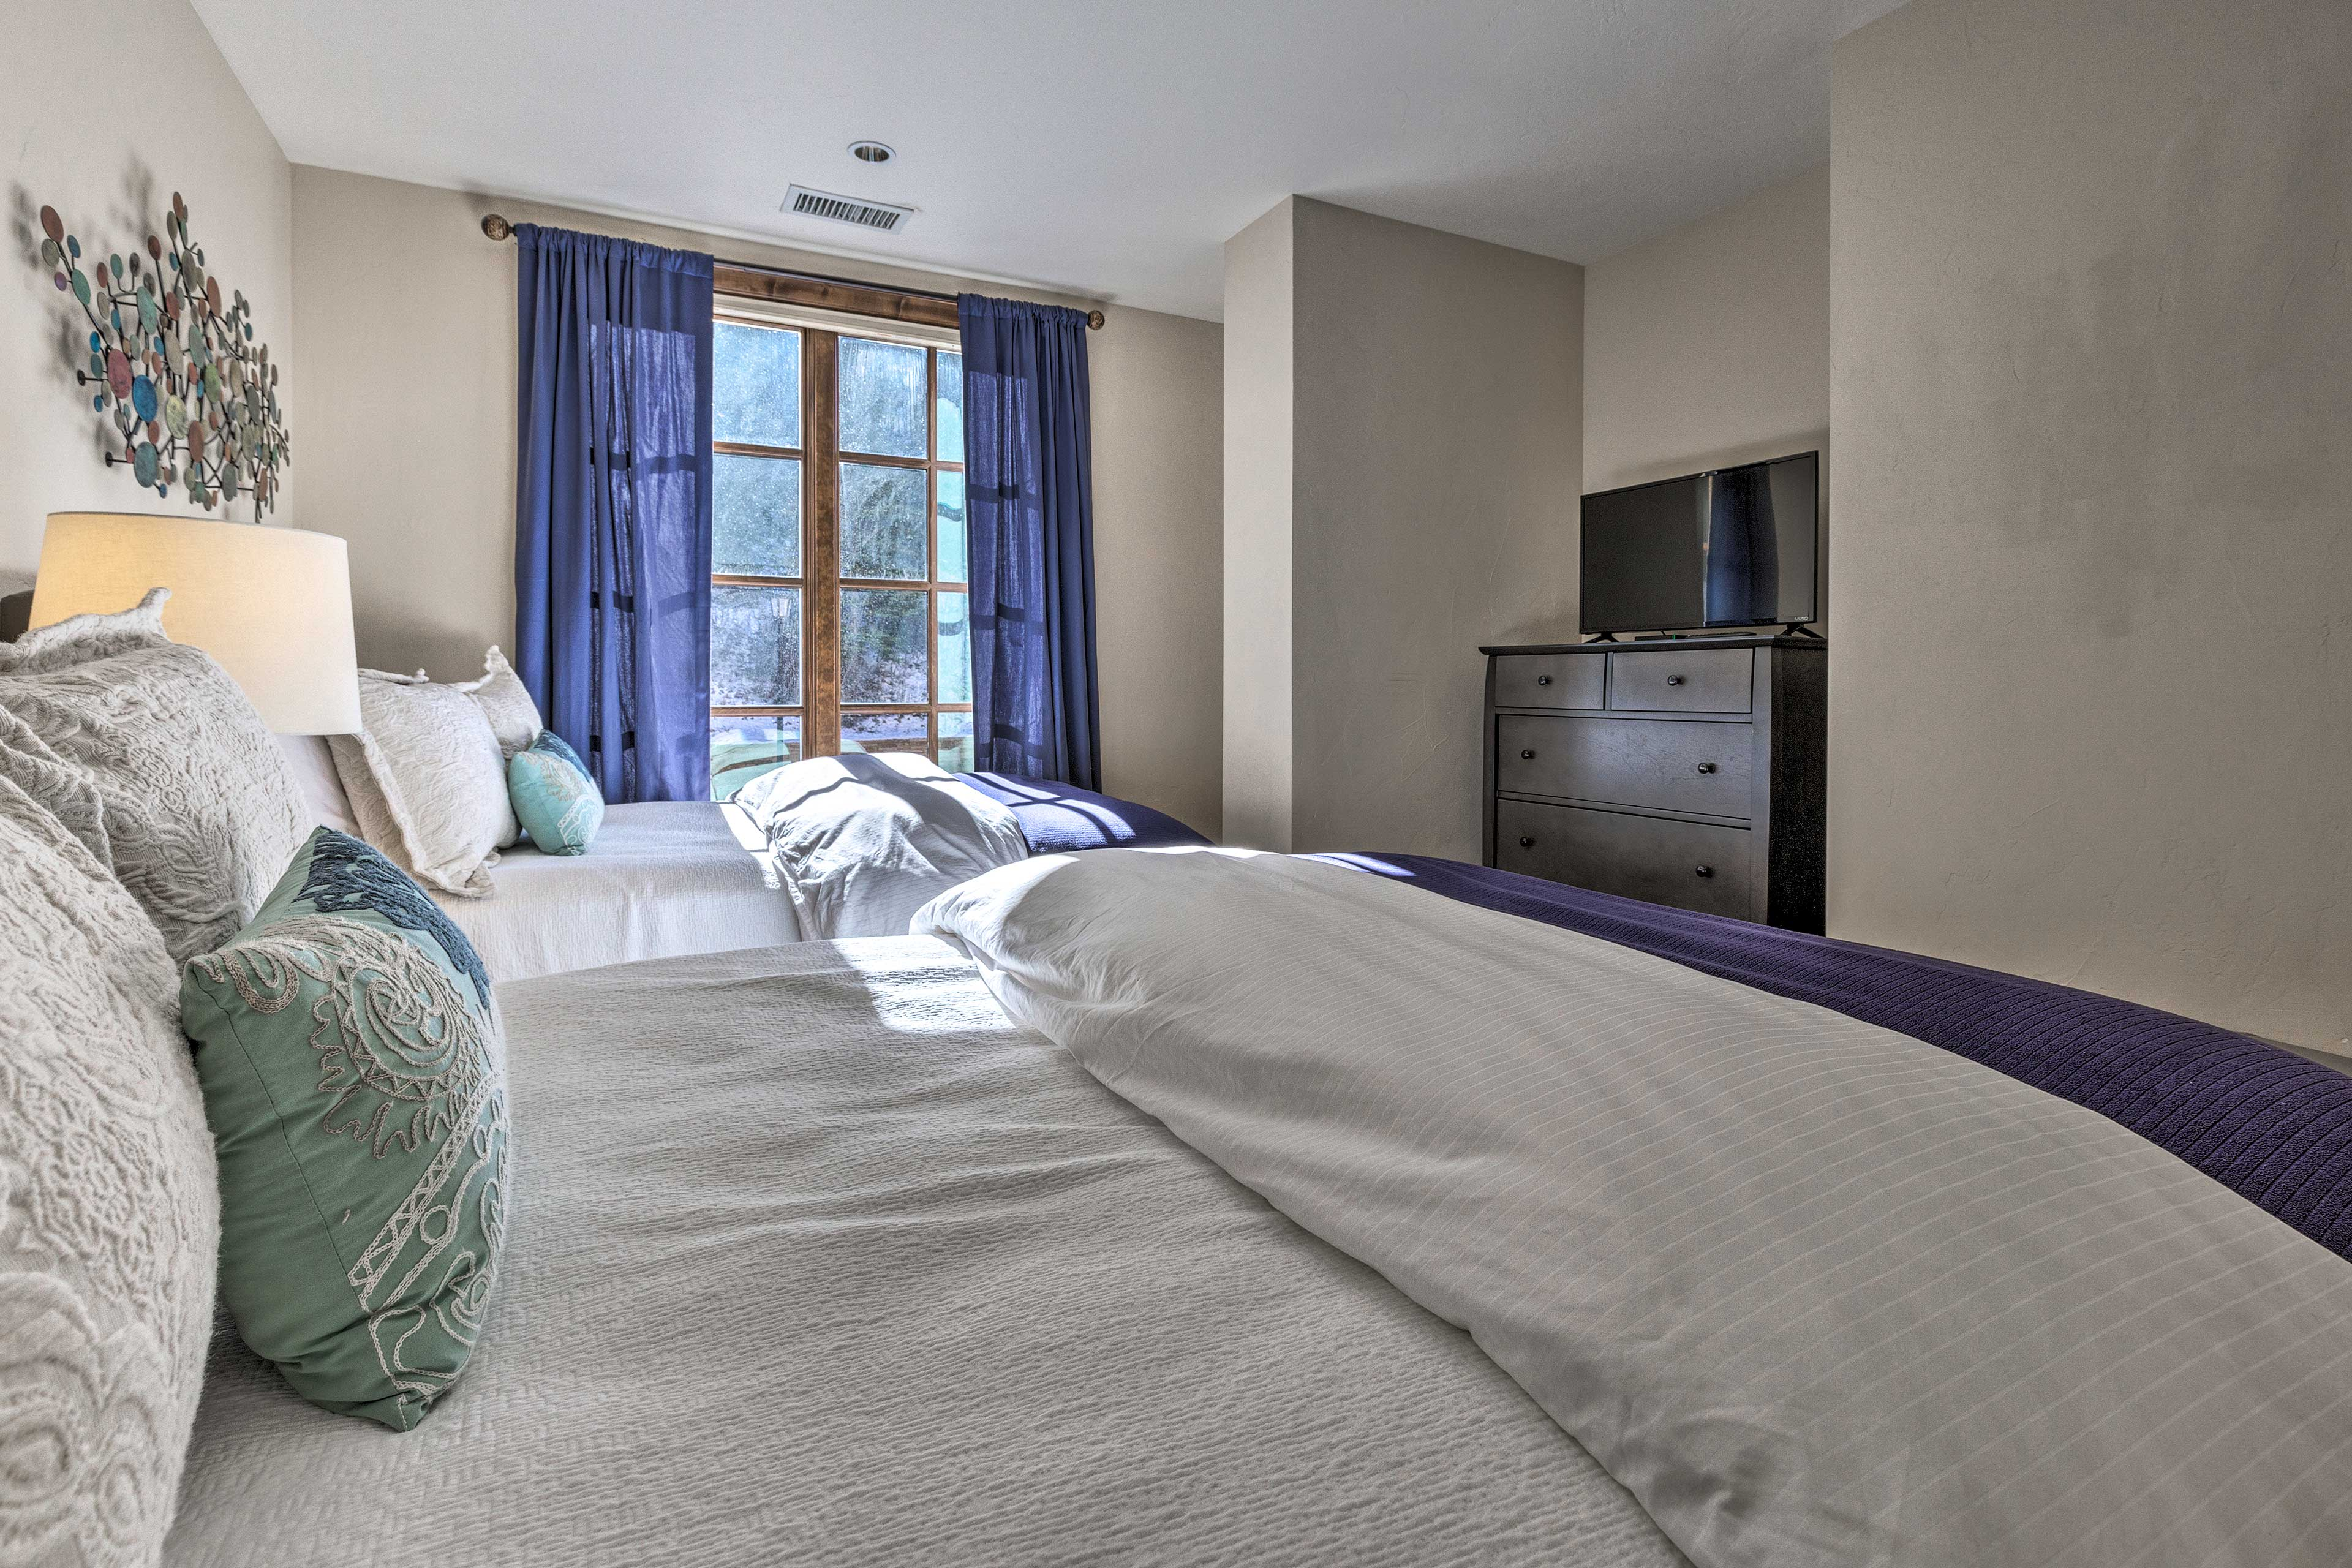 Fall asleep to your favorite movies on the flat-screen TV.